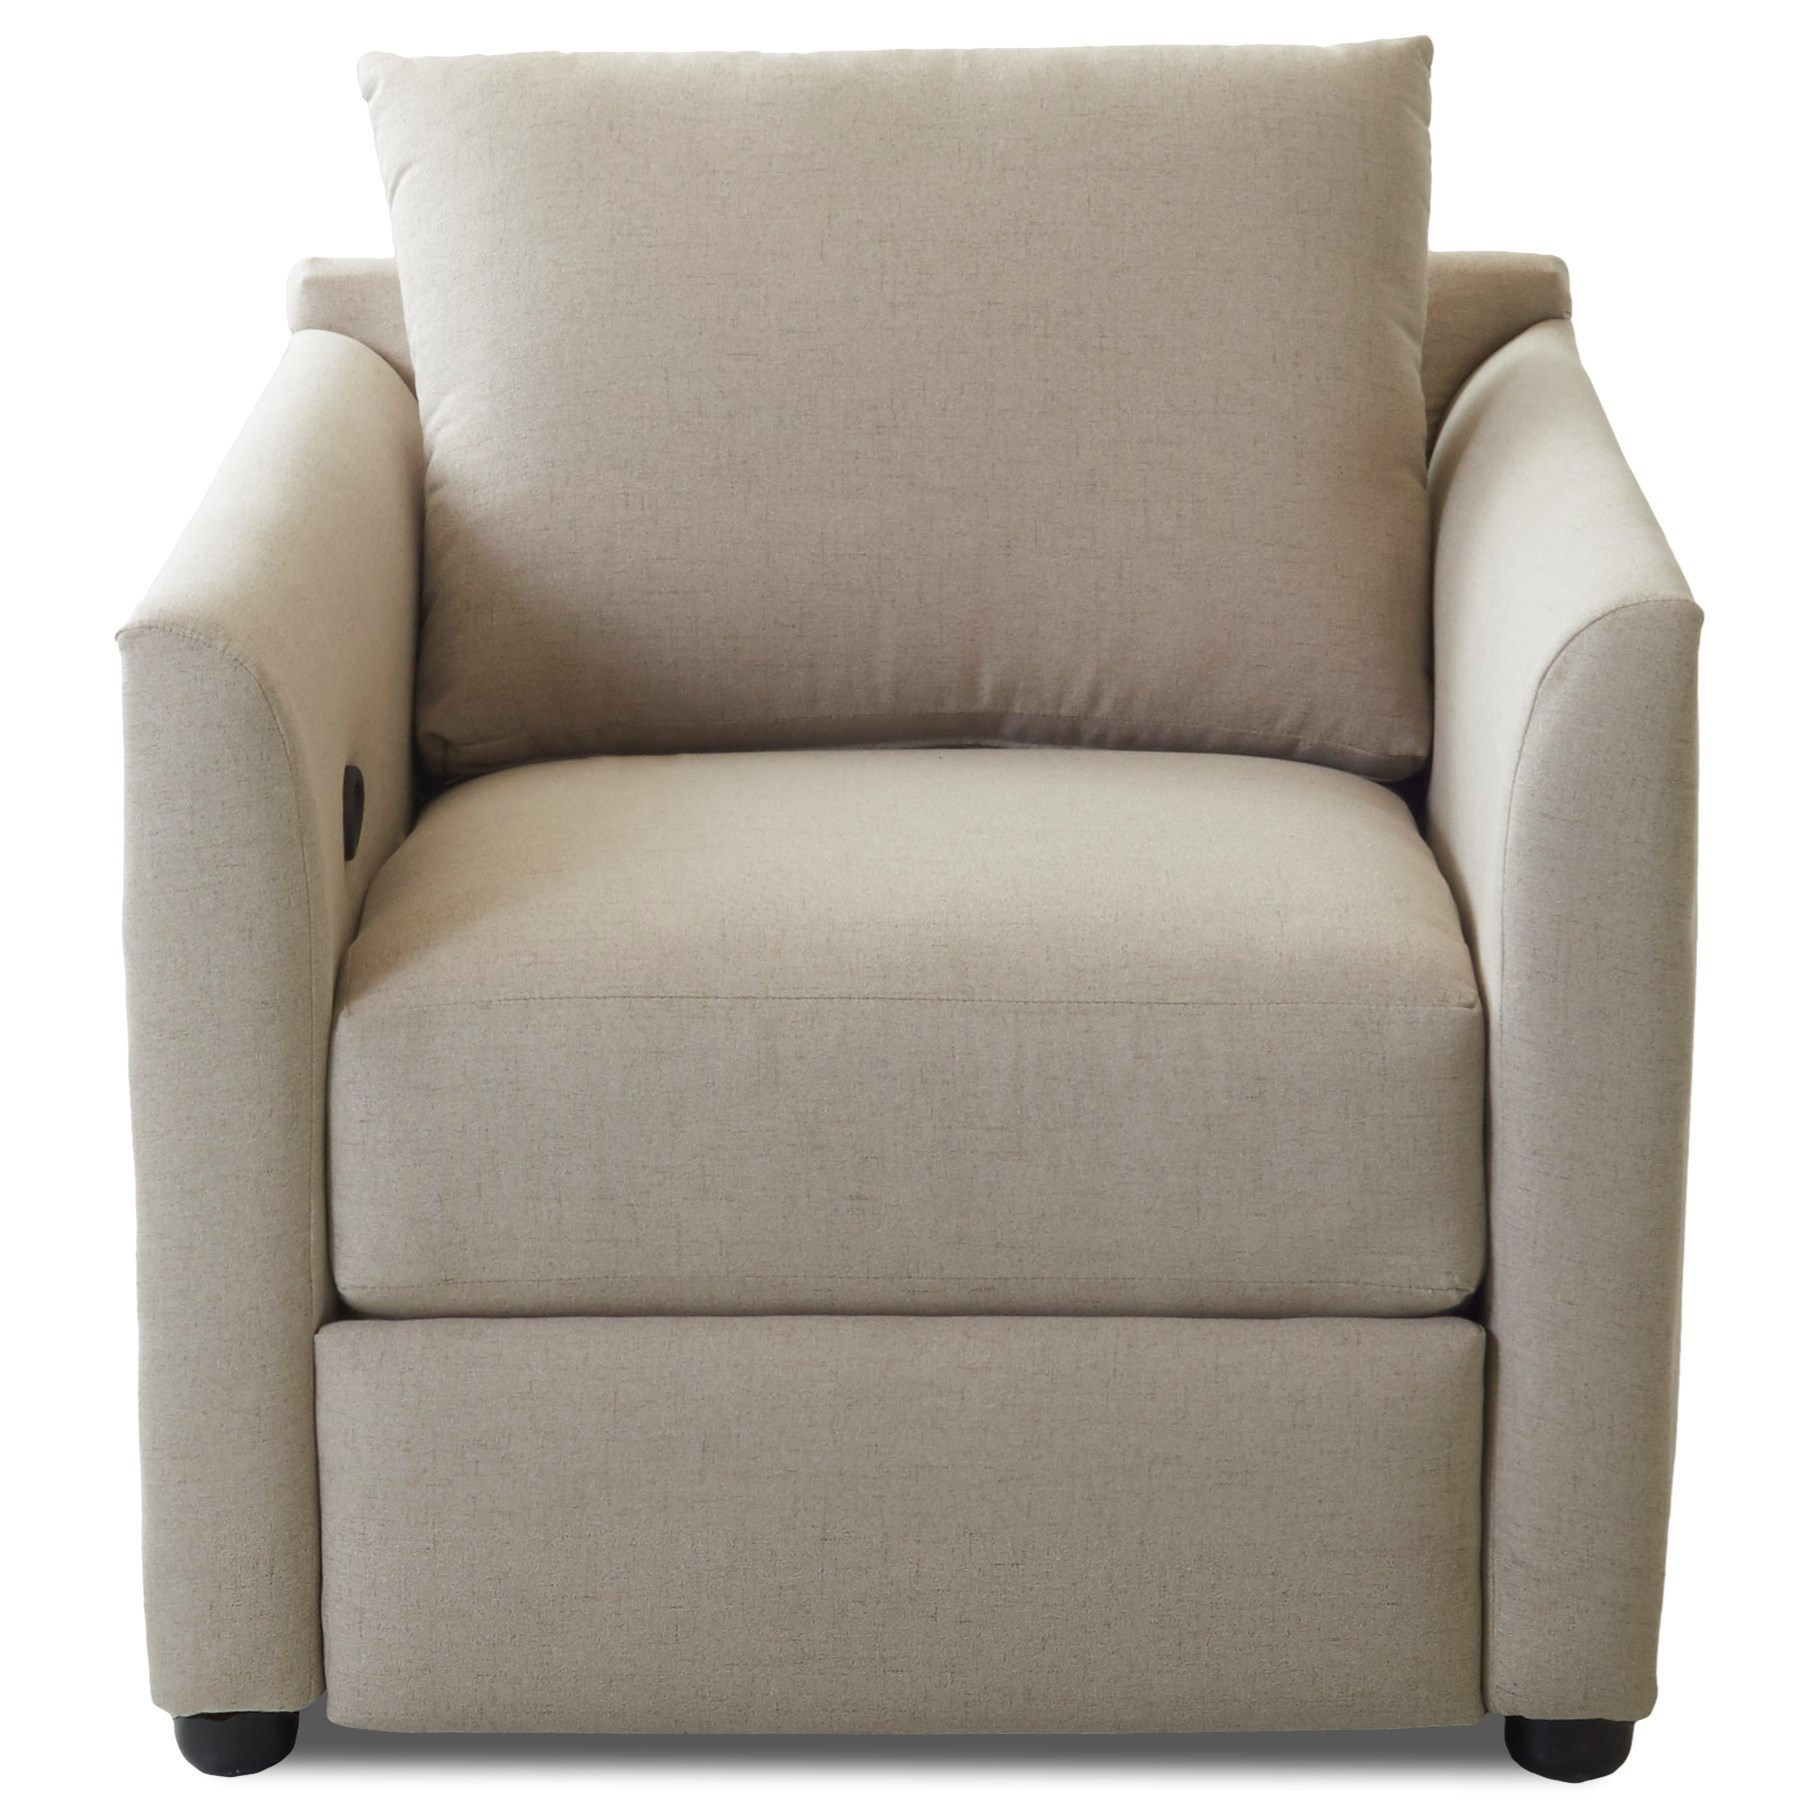 Transitional Power Reclining Chair